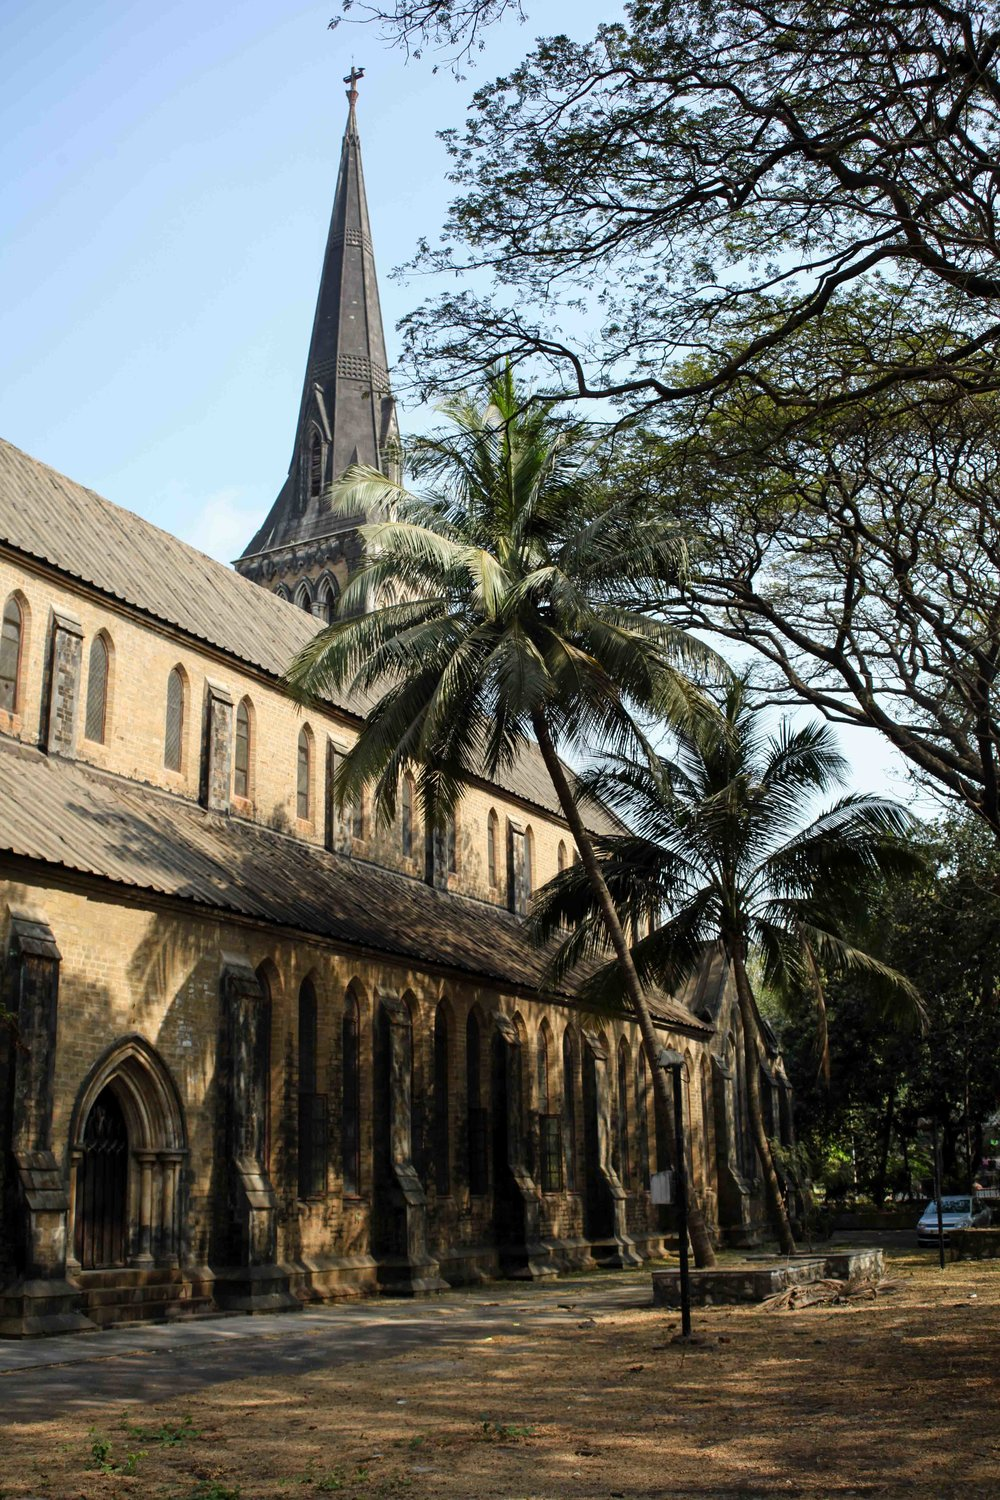 The Afghan Church in Mumbai